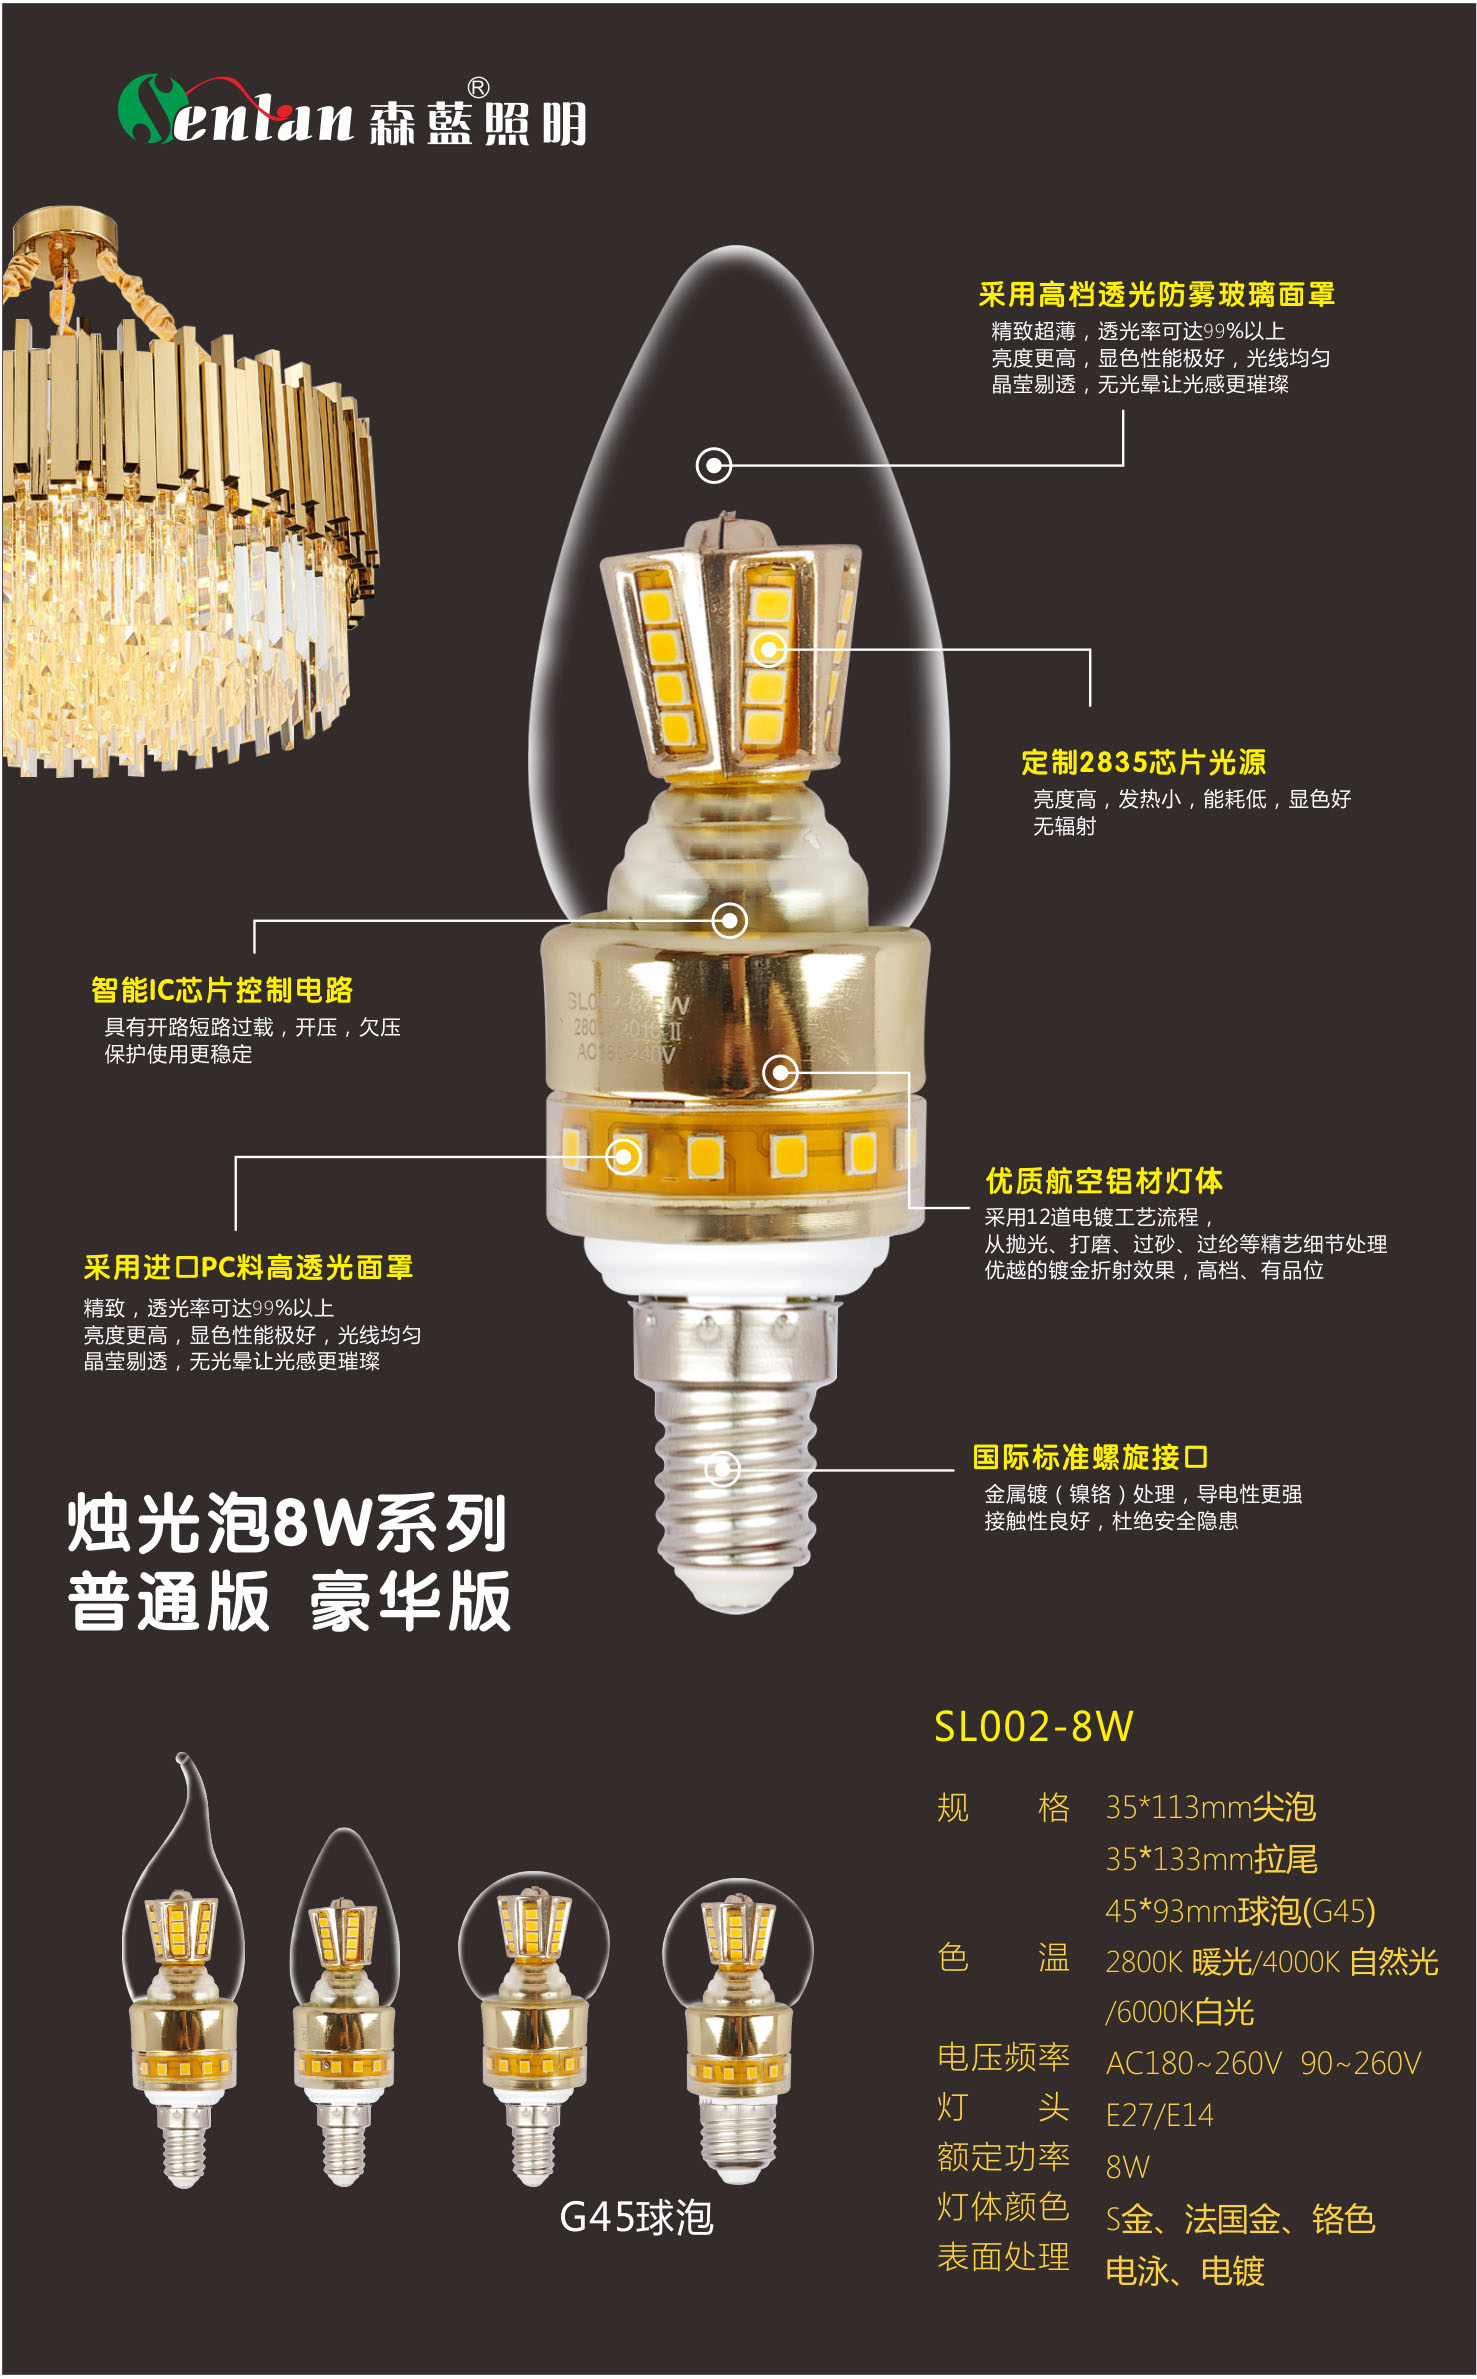 8W Light Luxury Lamp Series